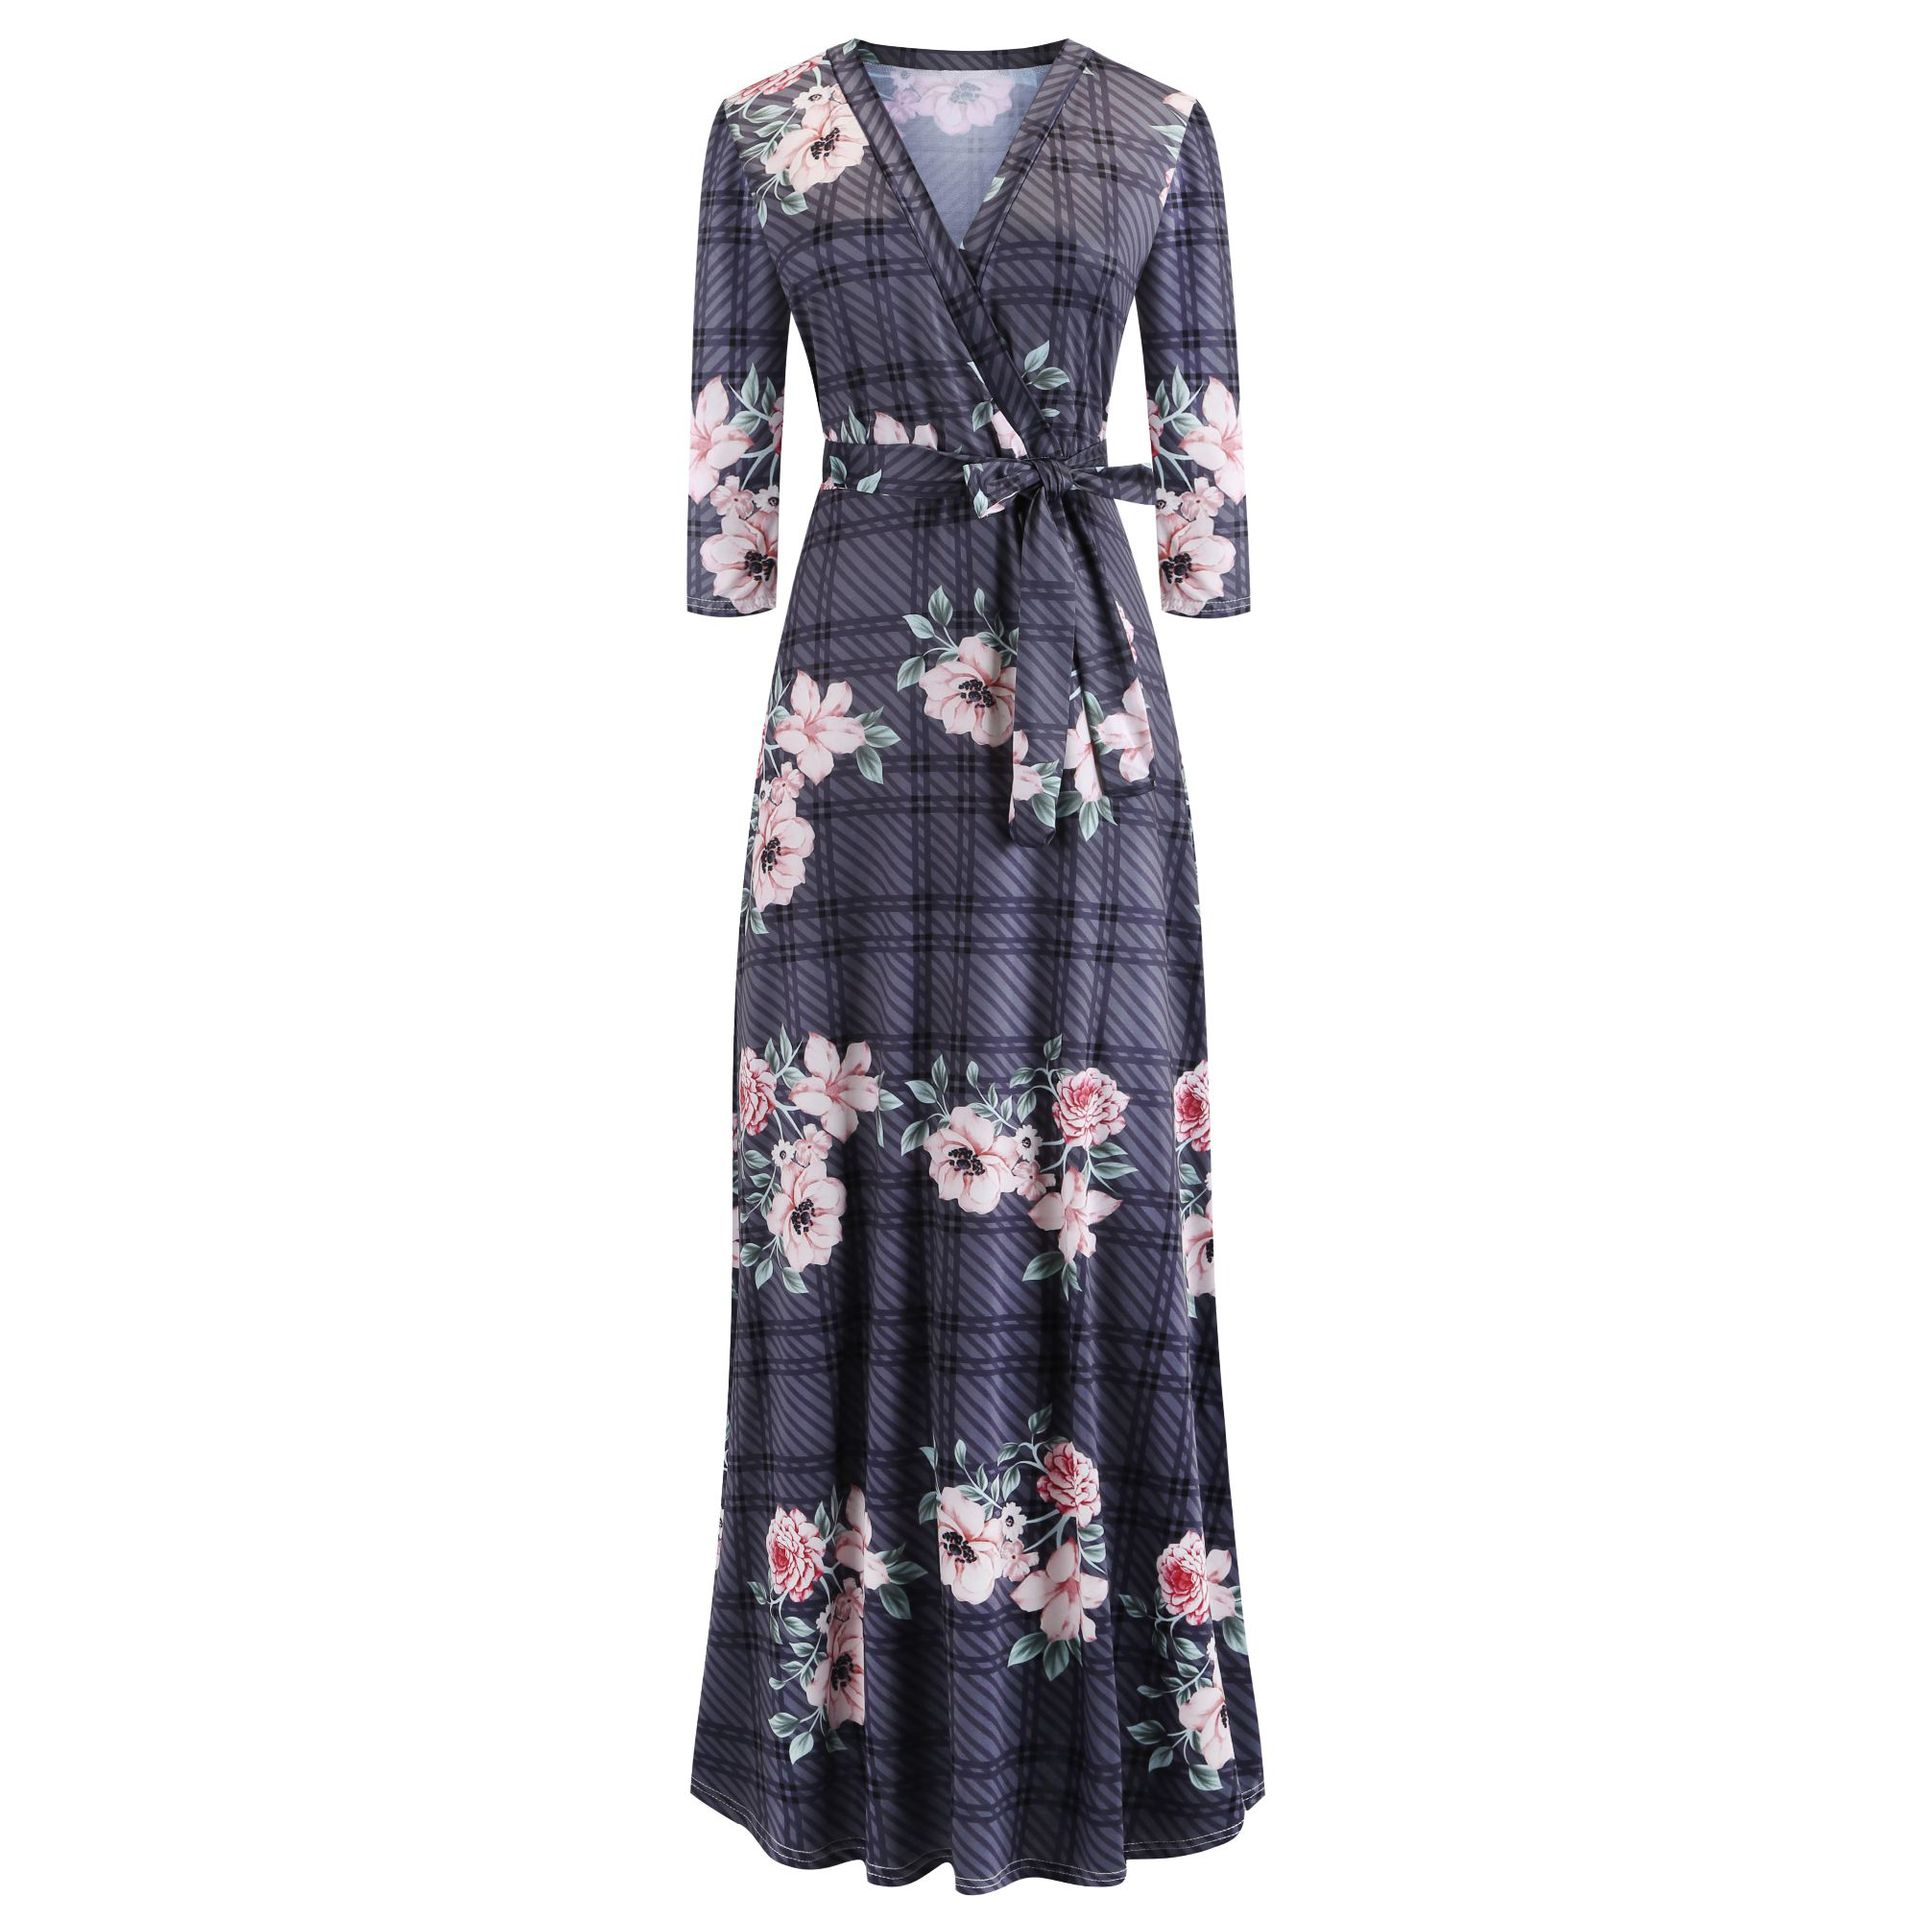 H510244daec2f4e89999b3a131ae39600n - Oufisun Spring Sexy Deep V Neck Women's Dress Bohemia Tunic Maxi Dresses Elegant Vintage Flowers Print Dress Vestidos Plus Size